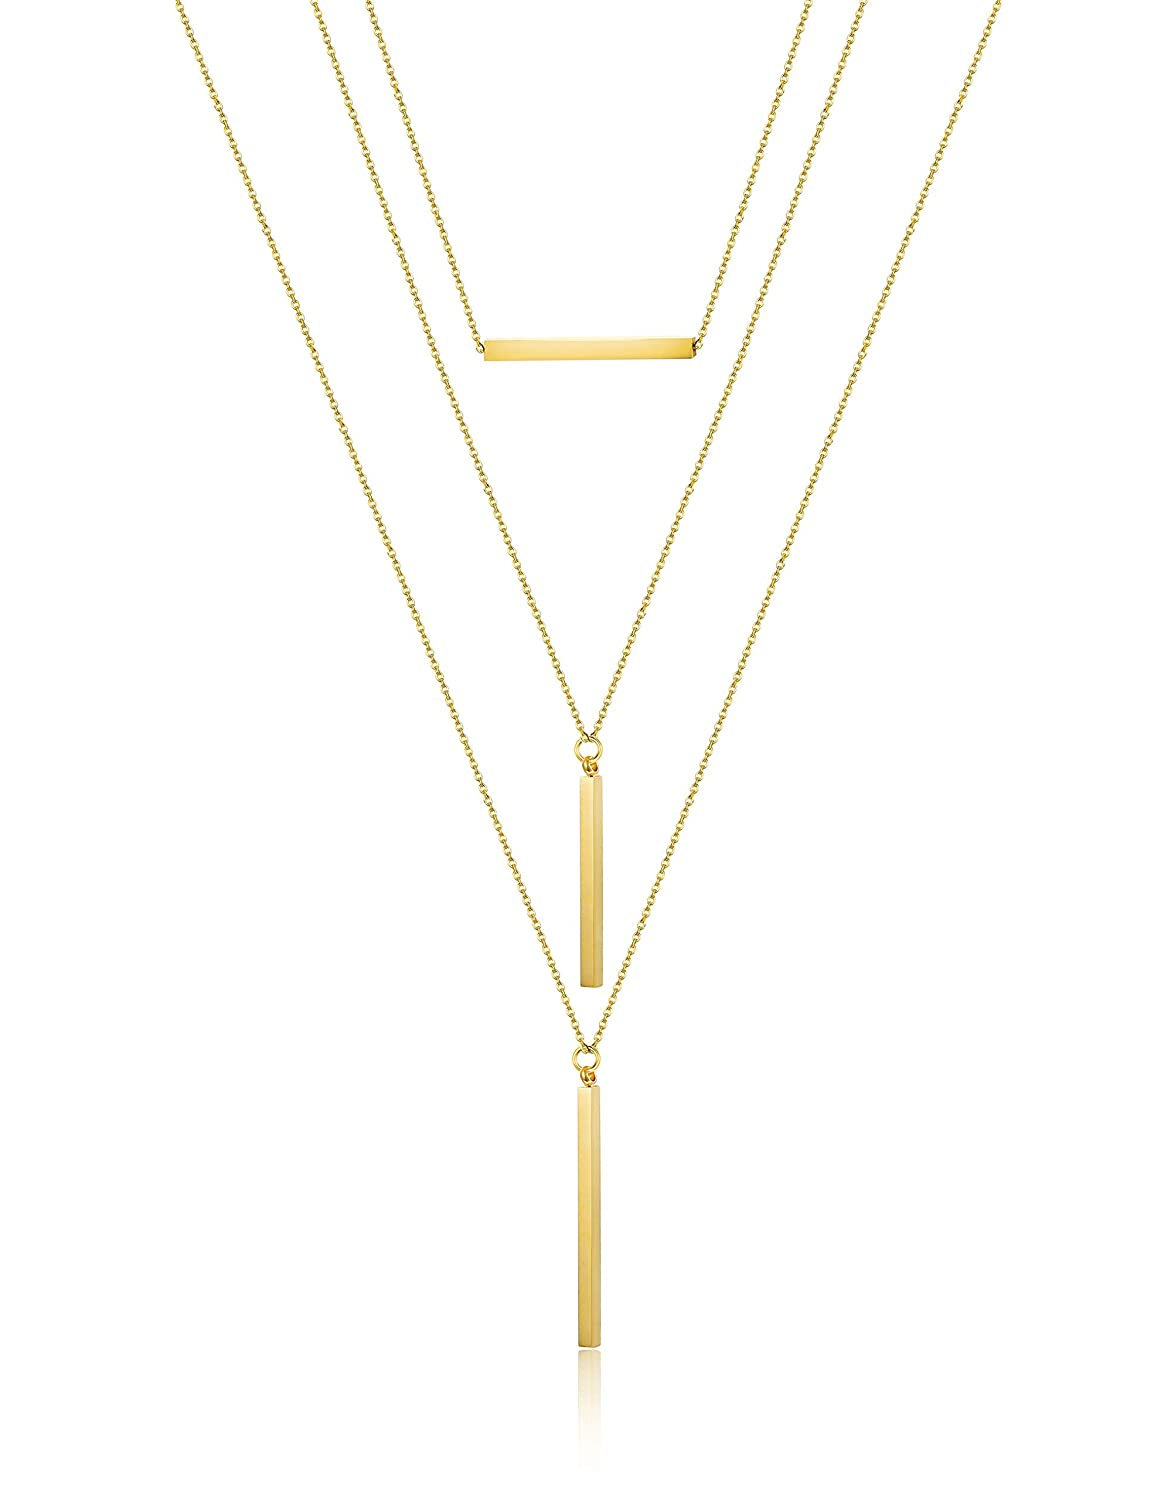 LOYALLOOK Bar Pendant Necklace Multilayer Simple Layered Choker Necklace Long Chain Y Necklace Women Girls LOY-M-N0007-S